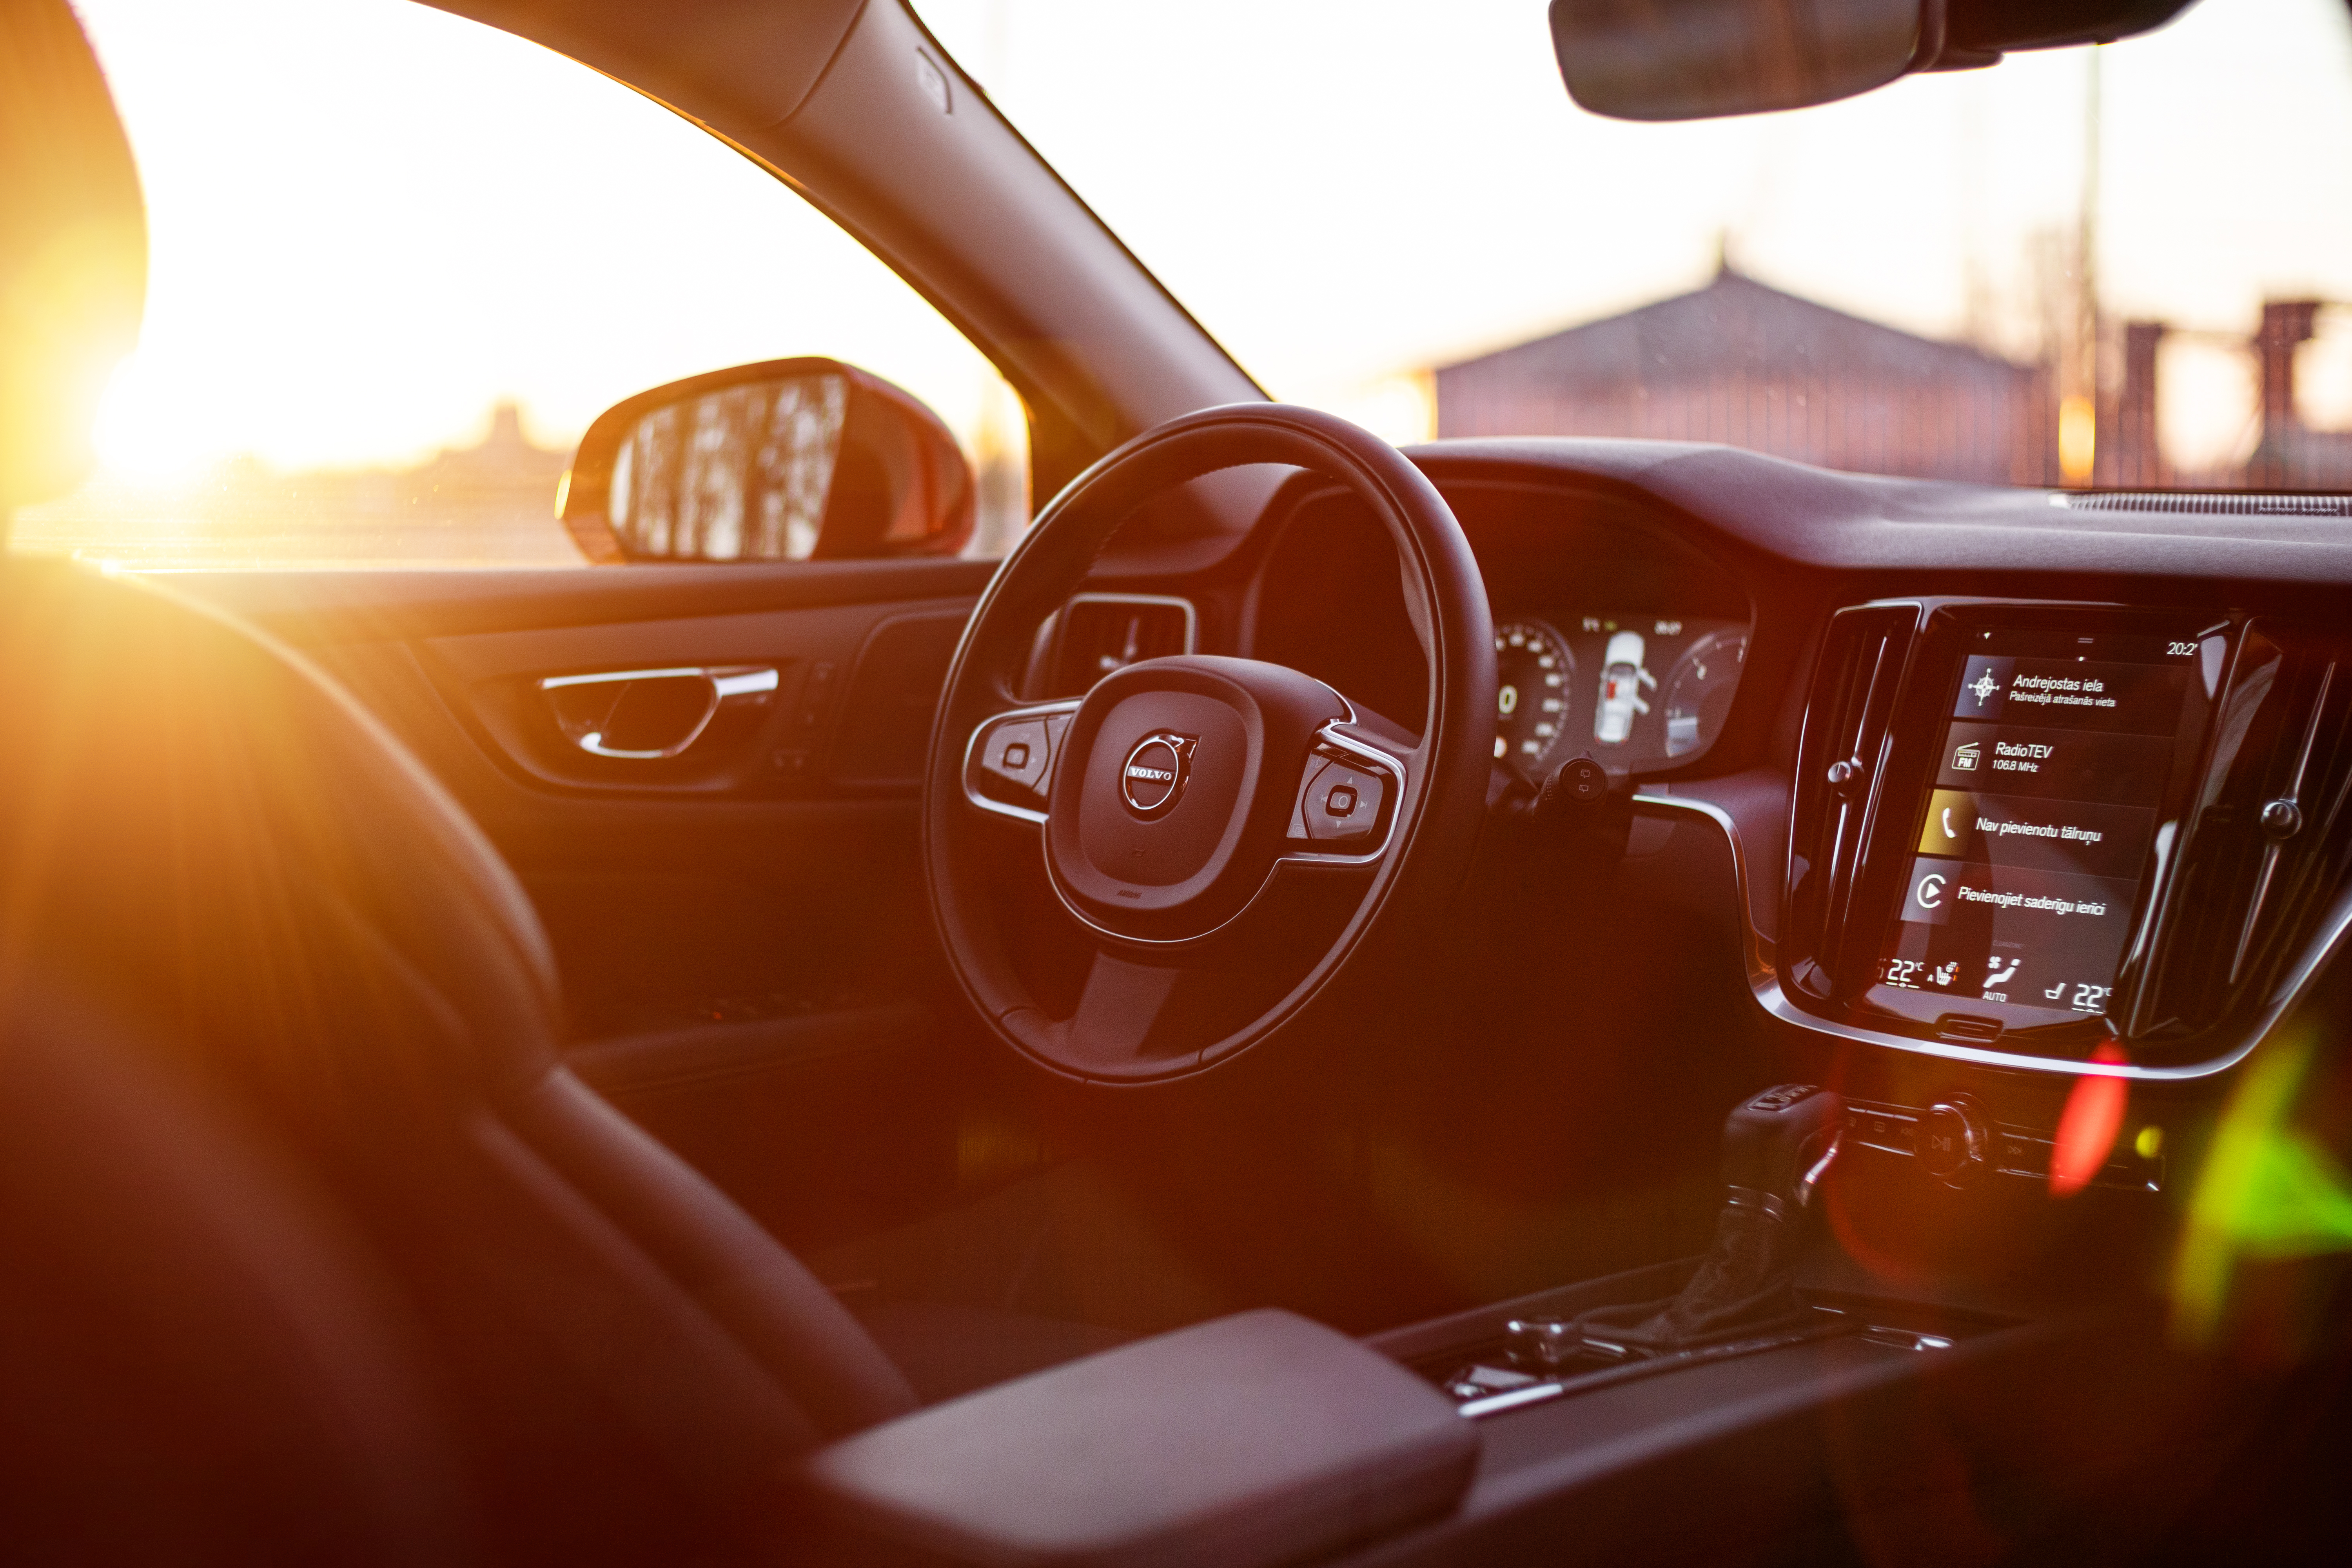 Volvo Experiencing Reduced Power, With